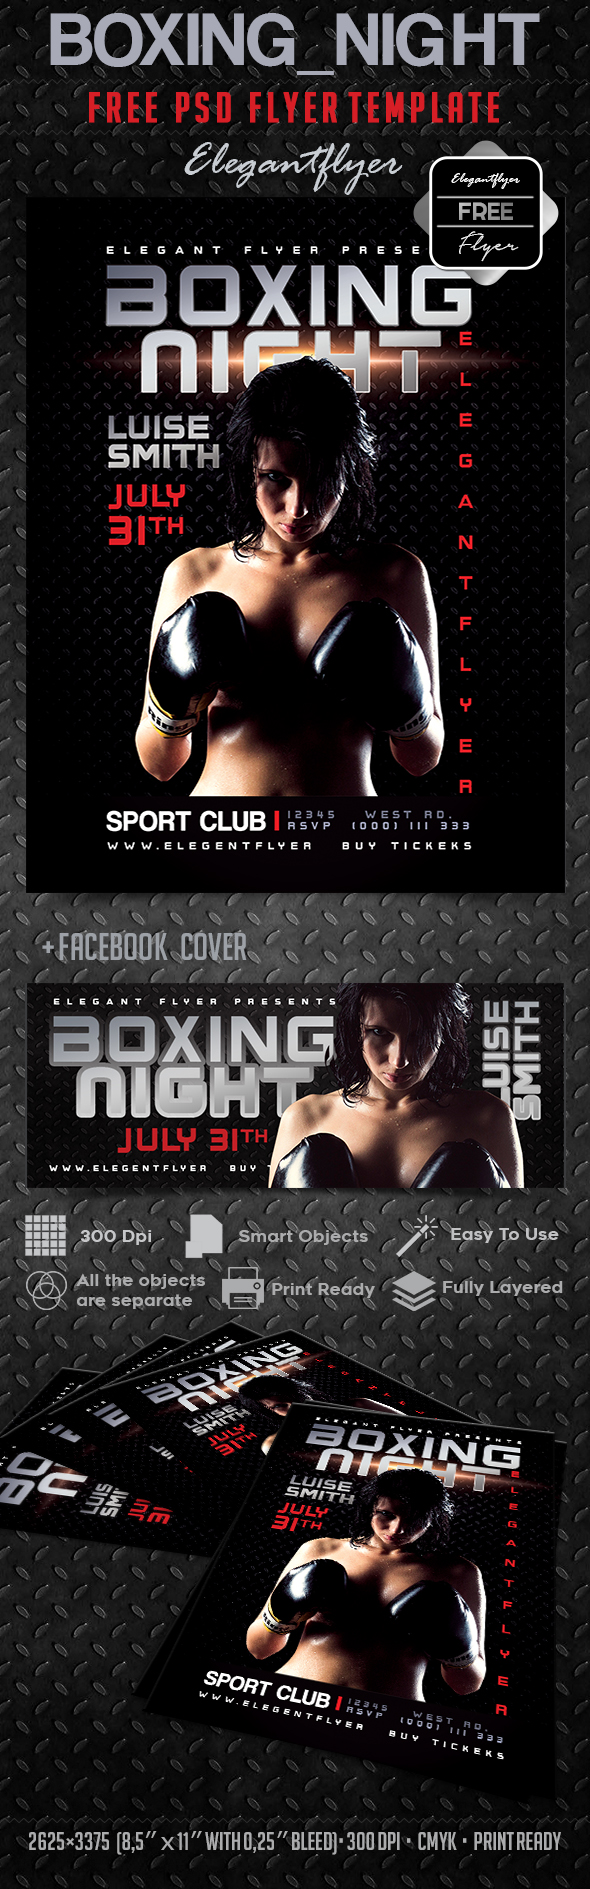 Boxing_night – Free Flyer PSD Template